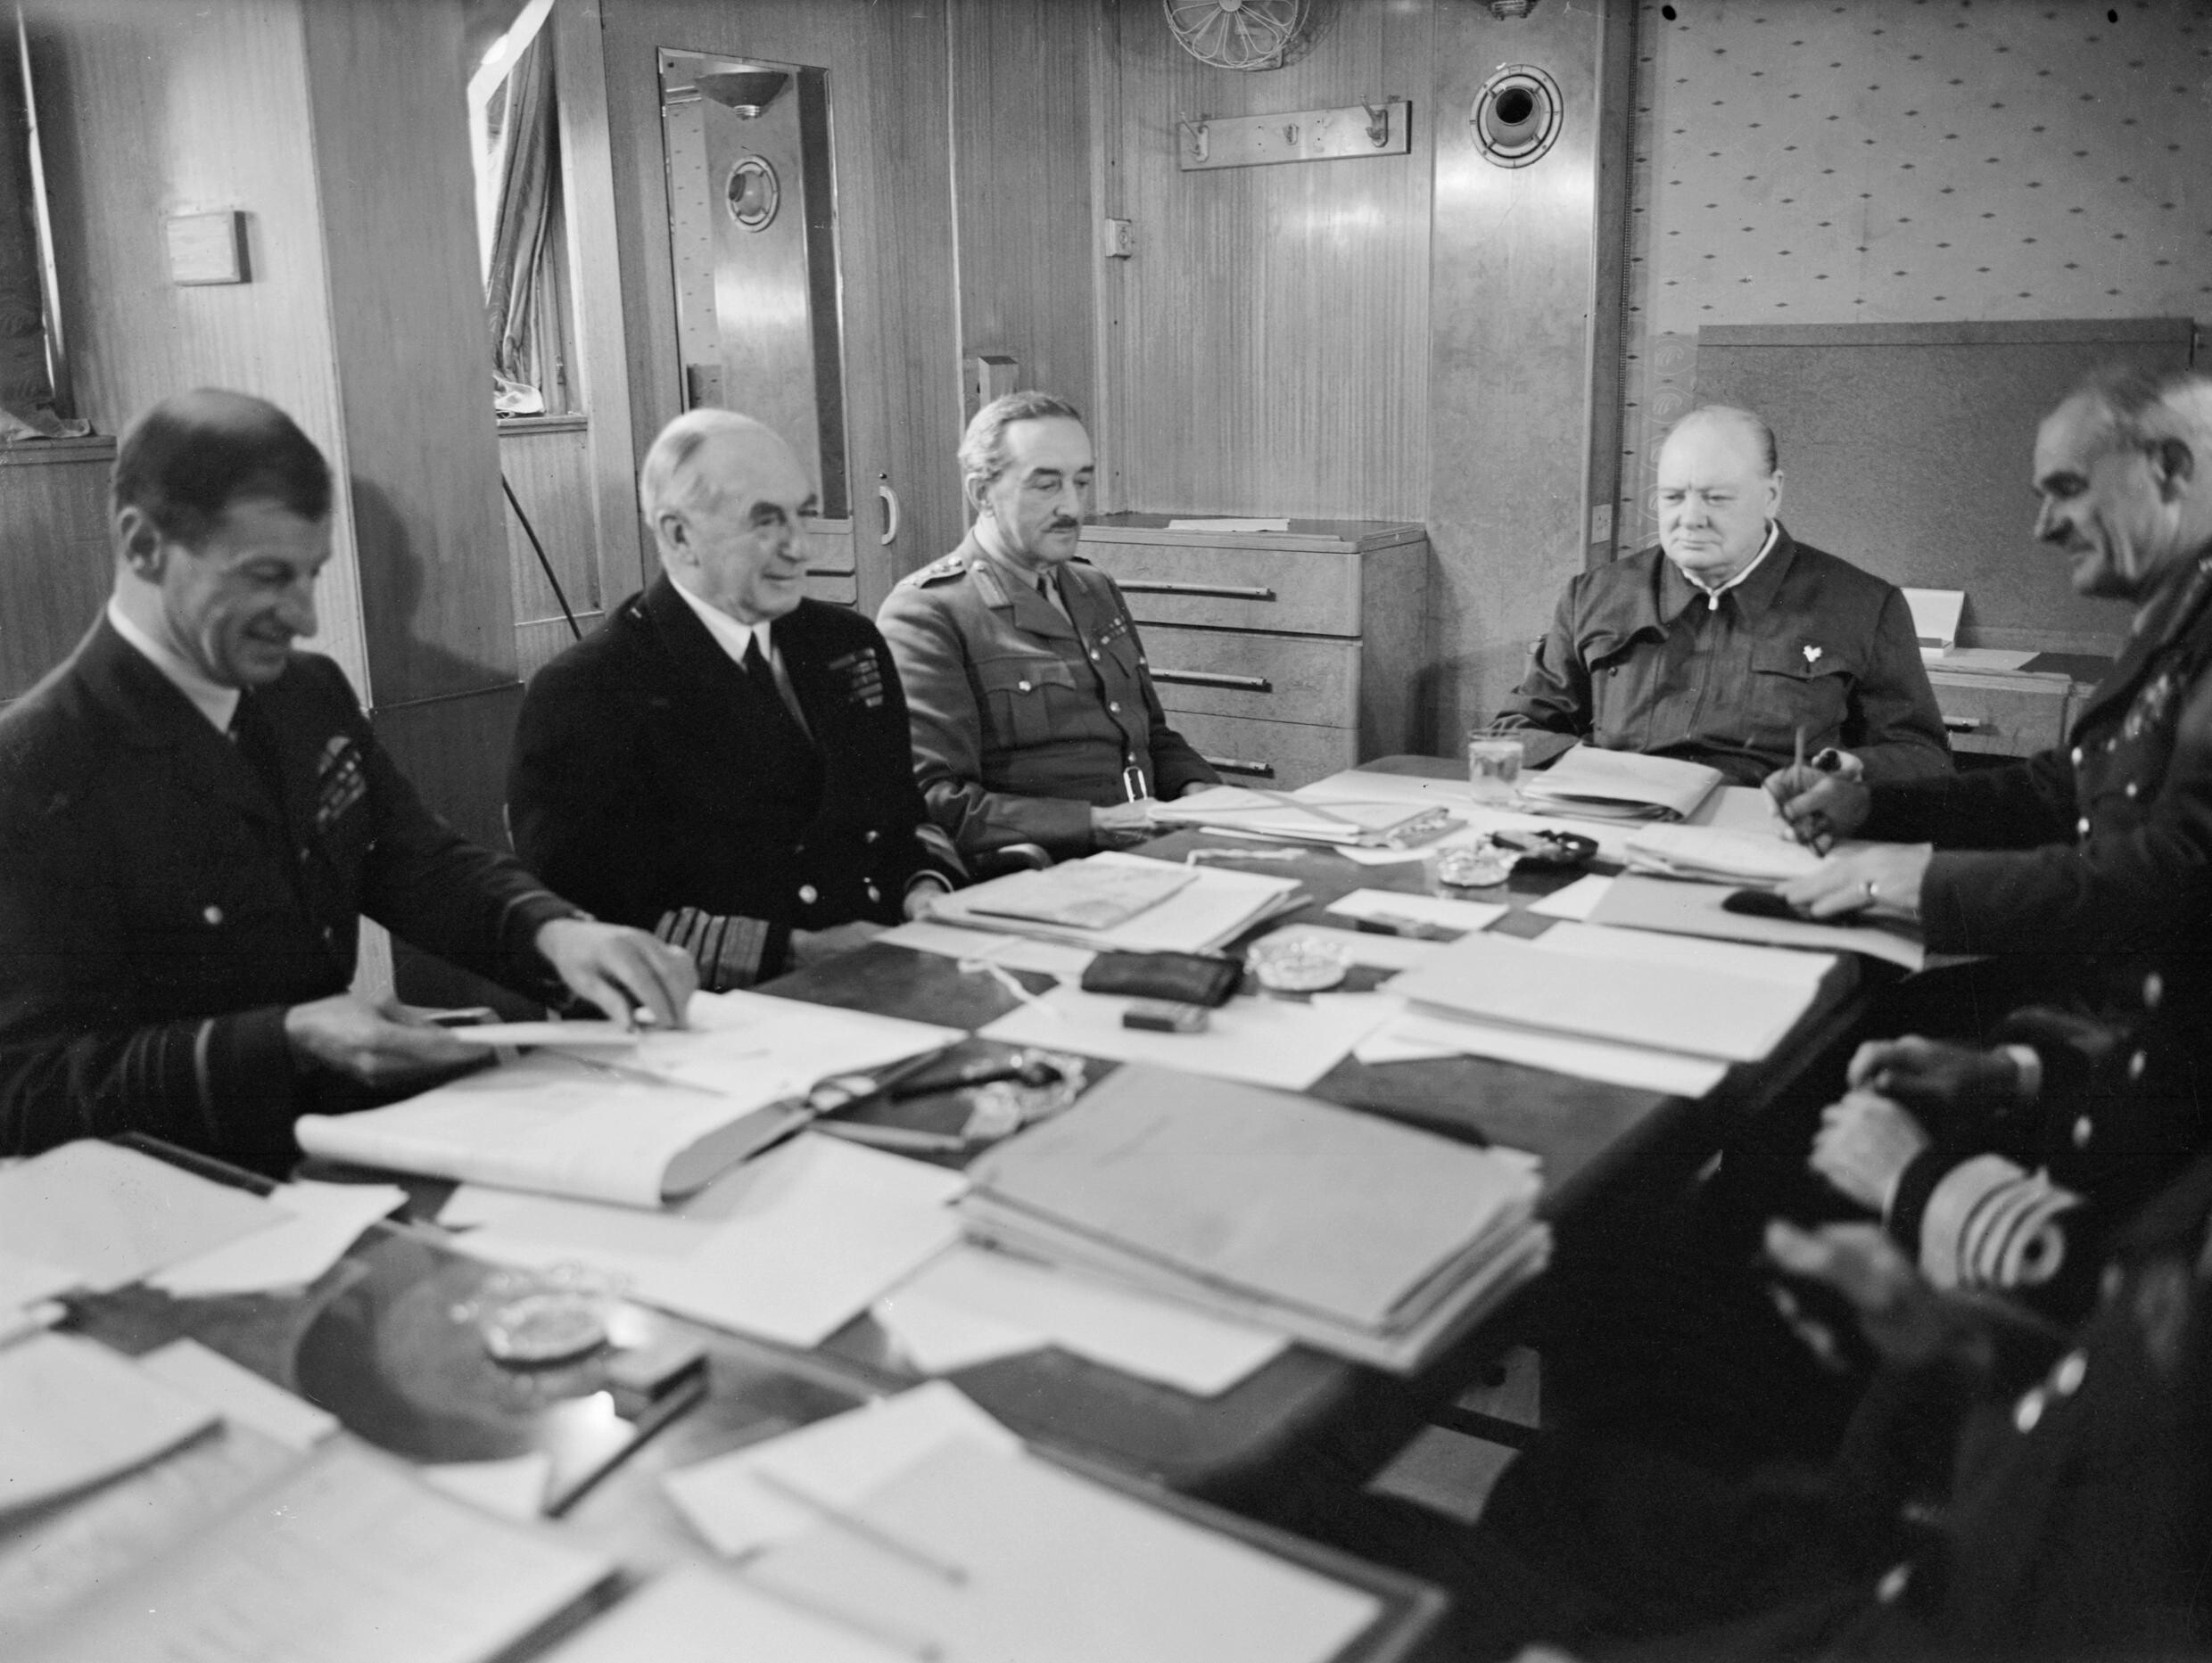 File:Winston Churchill and his Chiefs of Staff around a conference table aboard SS QUEEN MARY en ...